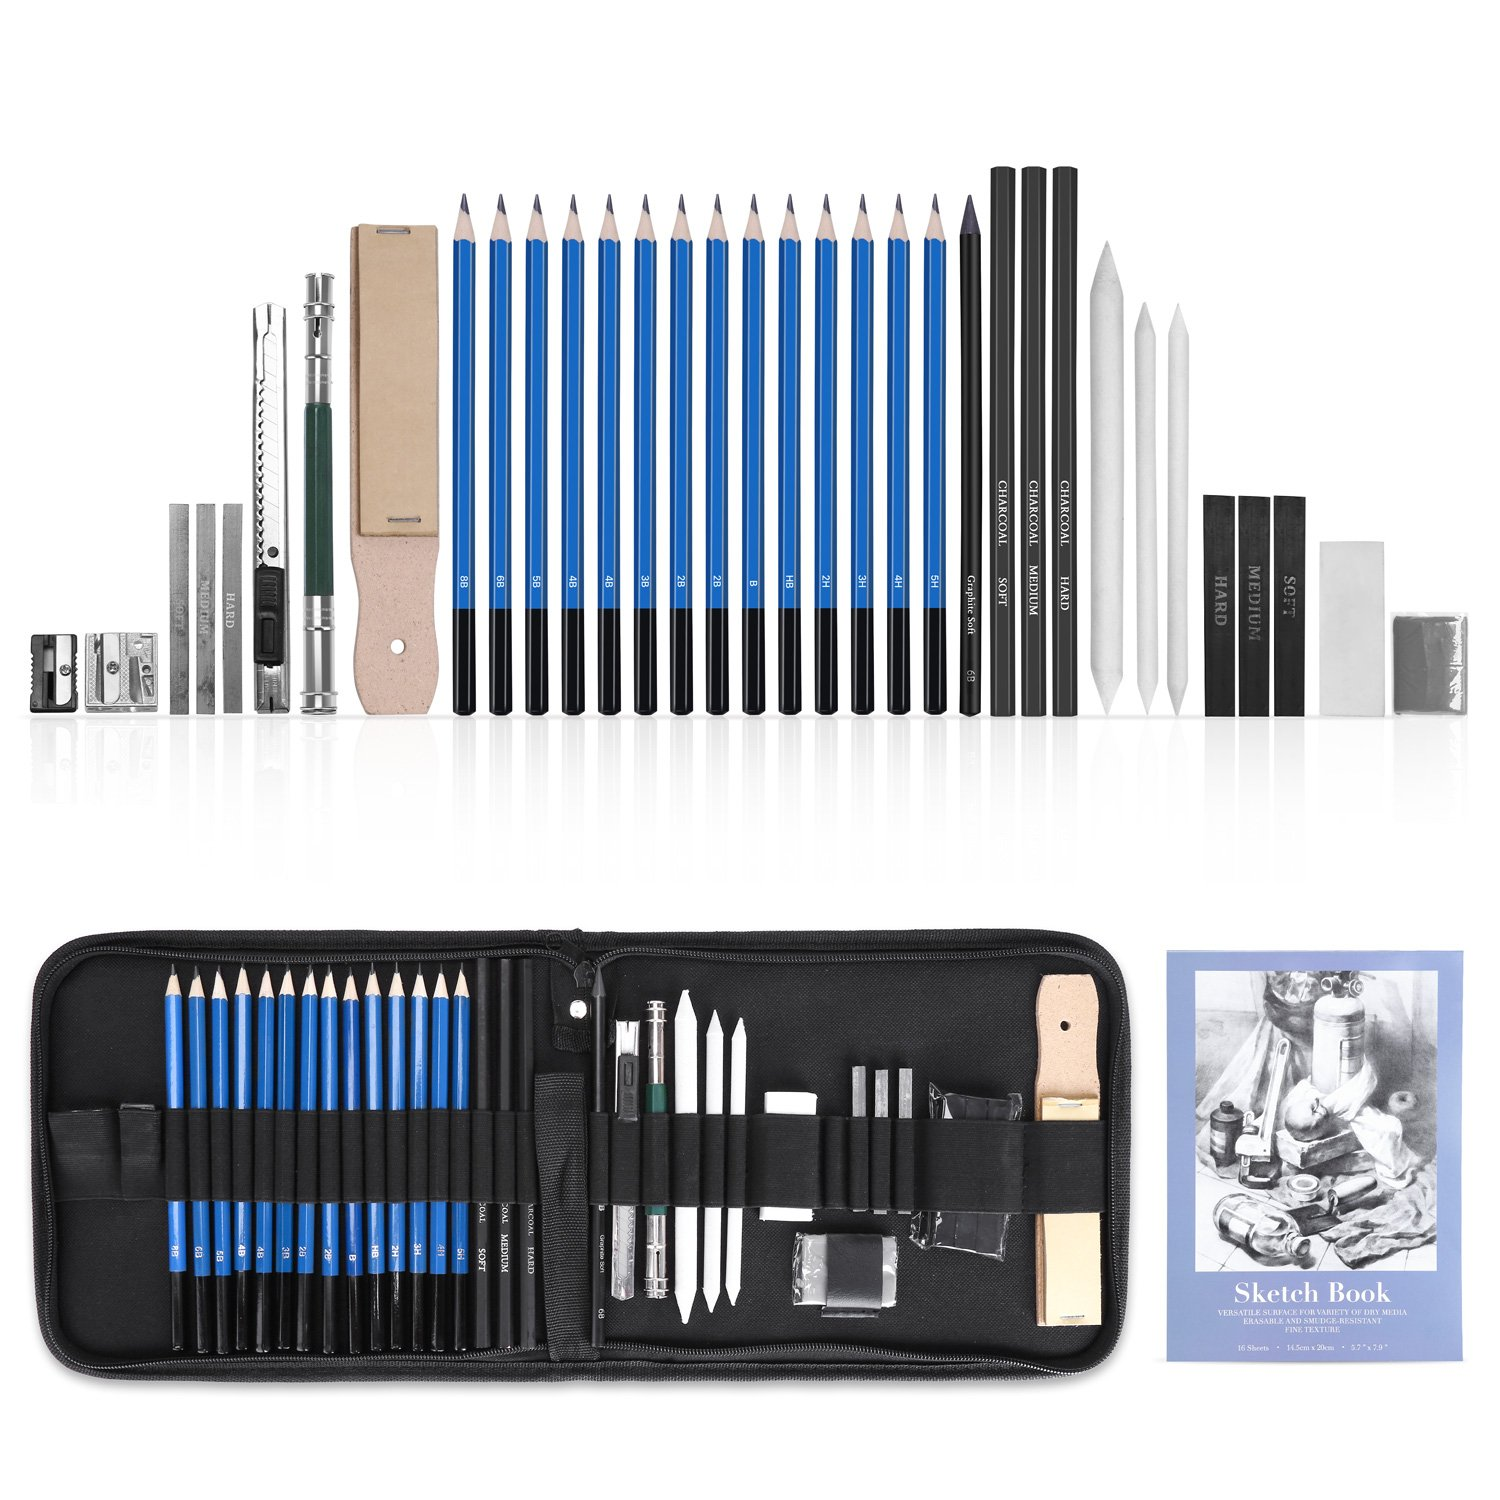 GHB 36Pcs Drawing Pencils Sketching Set Graphite Charcoal Pencils Art Supplies with Erasers Portable Kit Bag Sketchpad